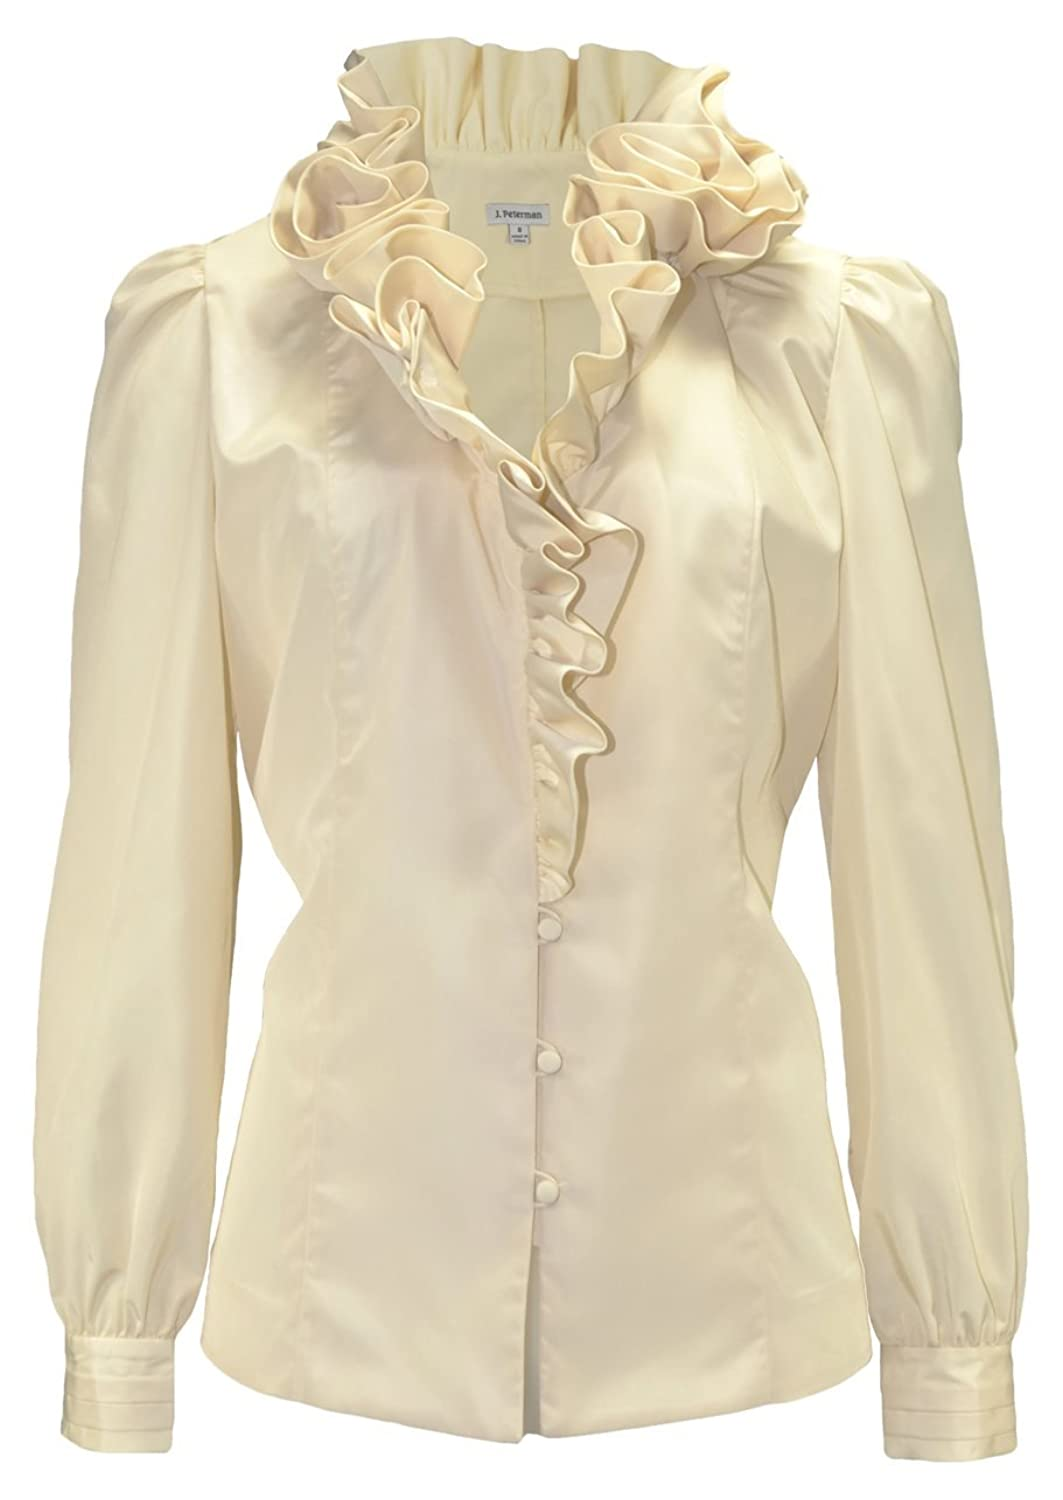 Edwardian Blouses | White & Black Lace Blouses & Sweaters Ruffle Neck Blouse $263.35 AT vintagedancer.com